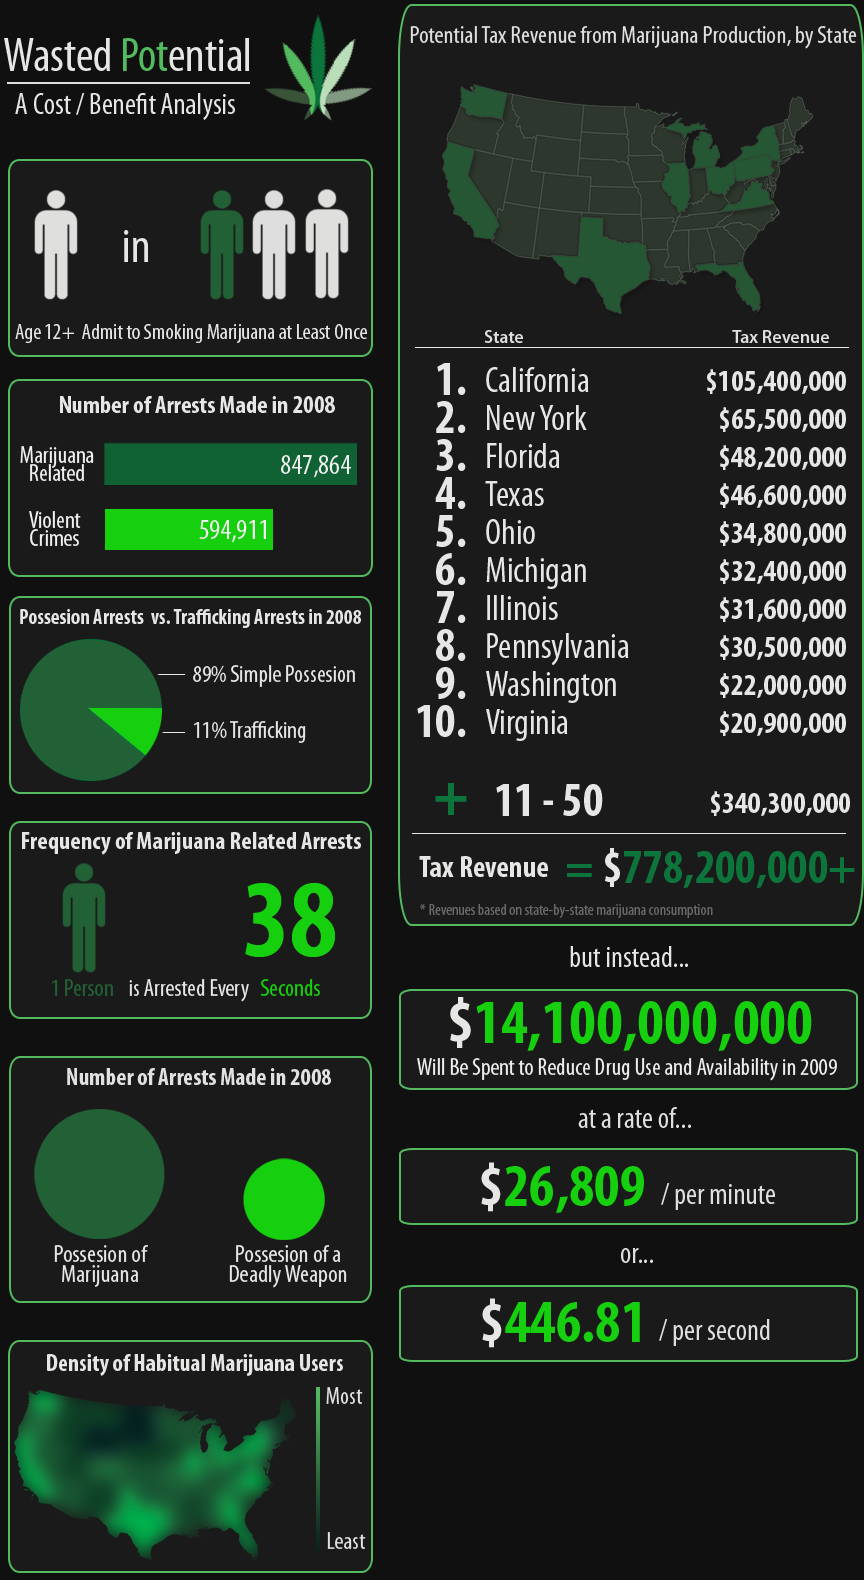 State By State Revenue From Marijuana If It Were Legal Infographic